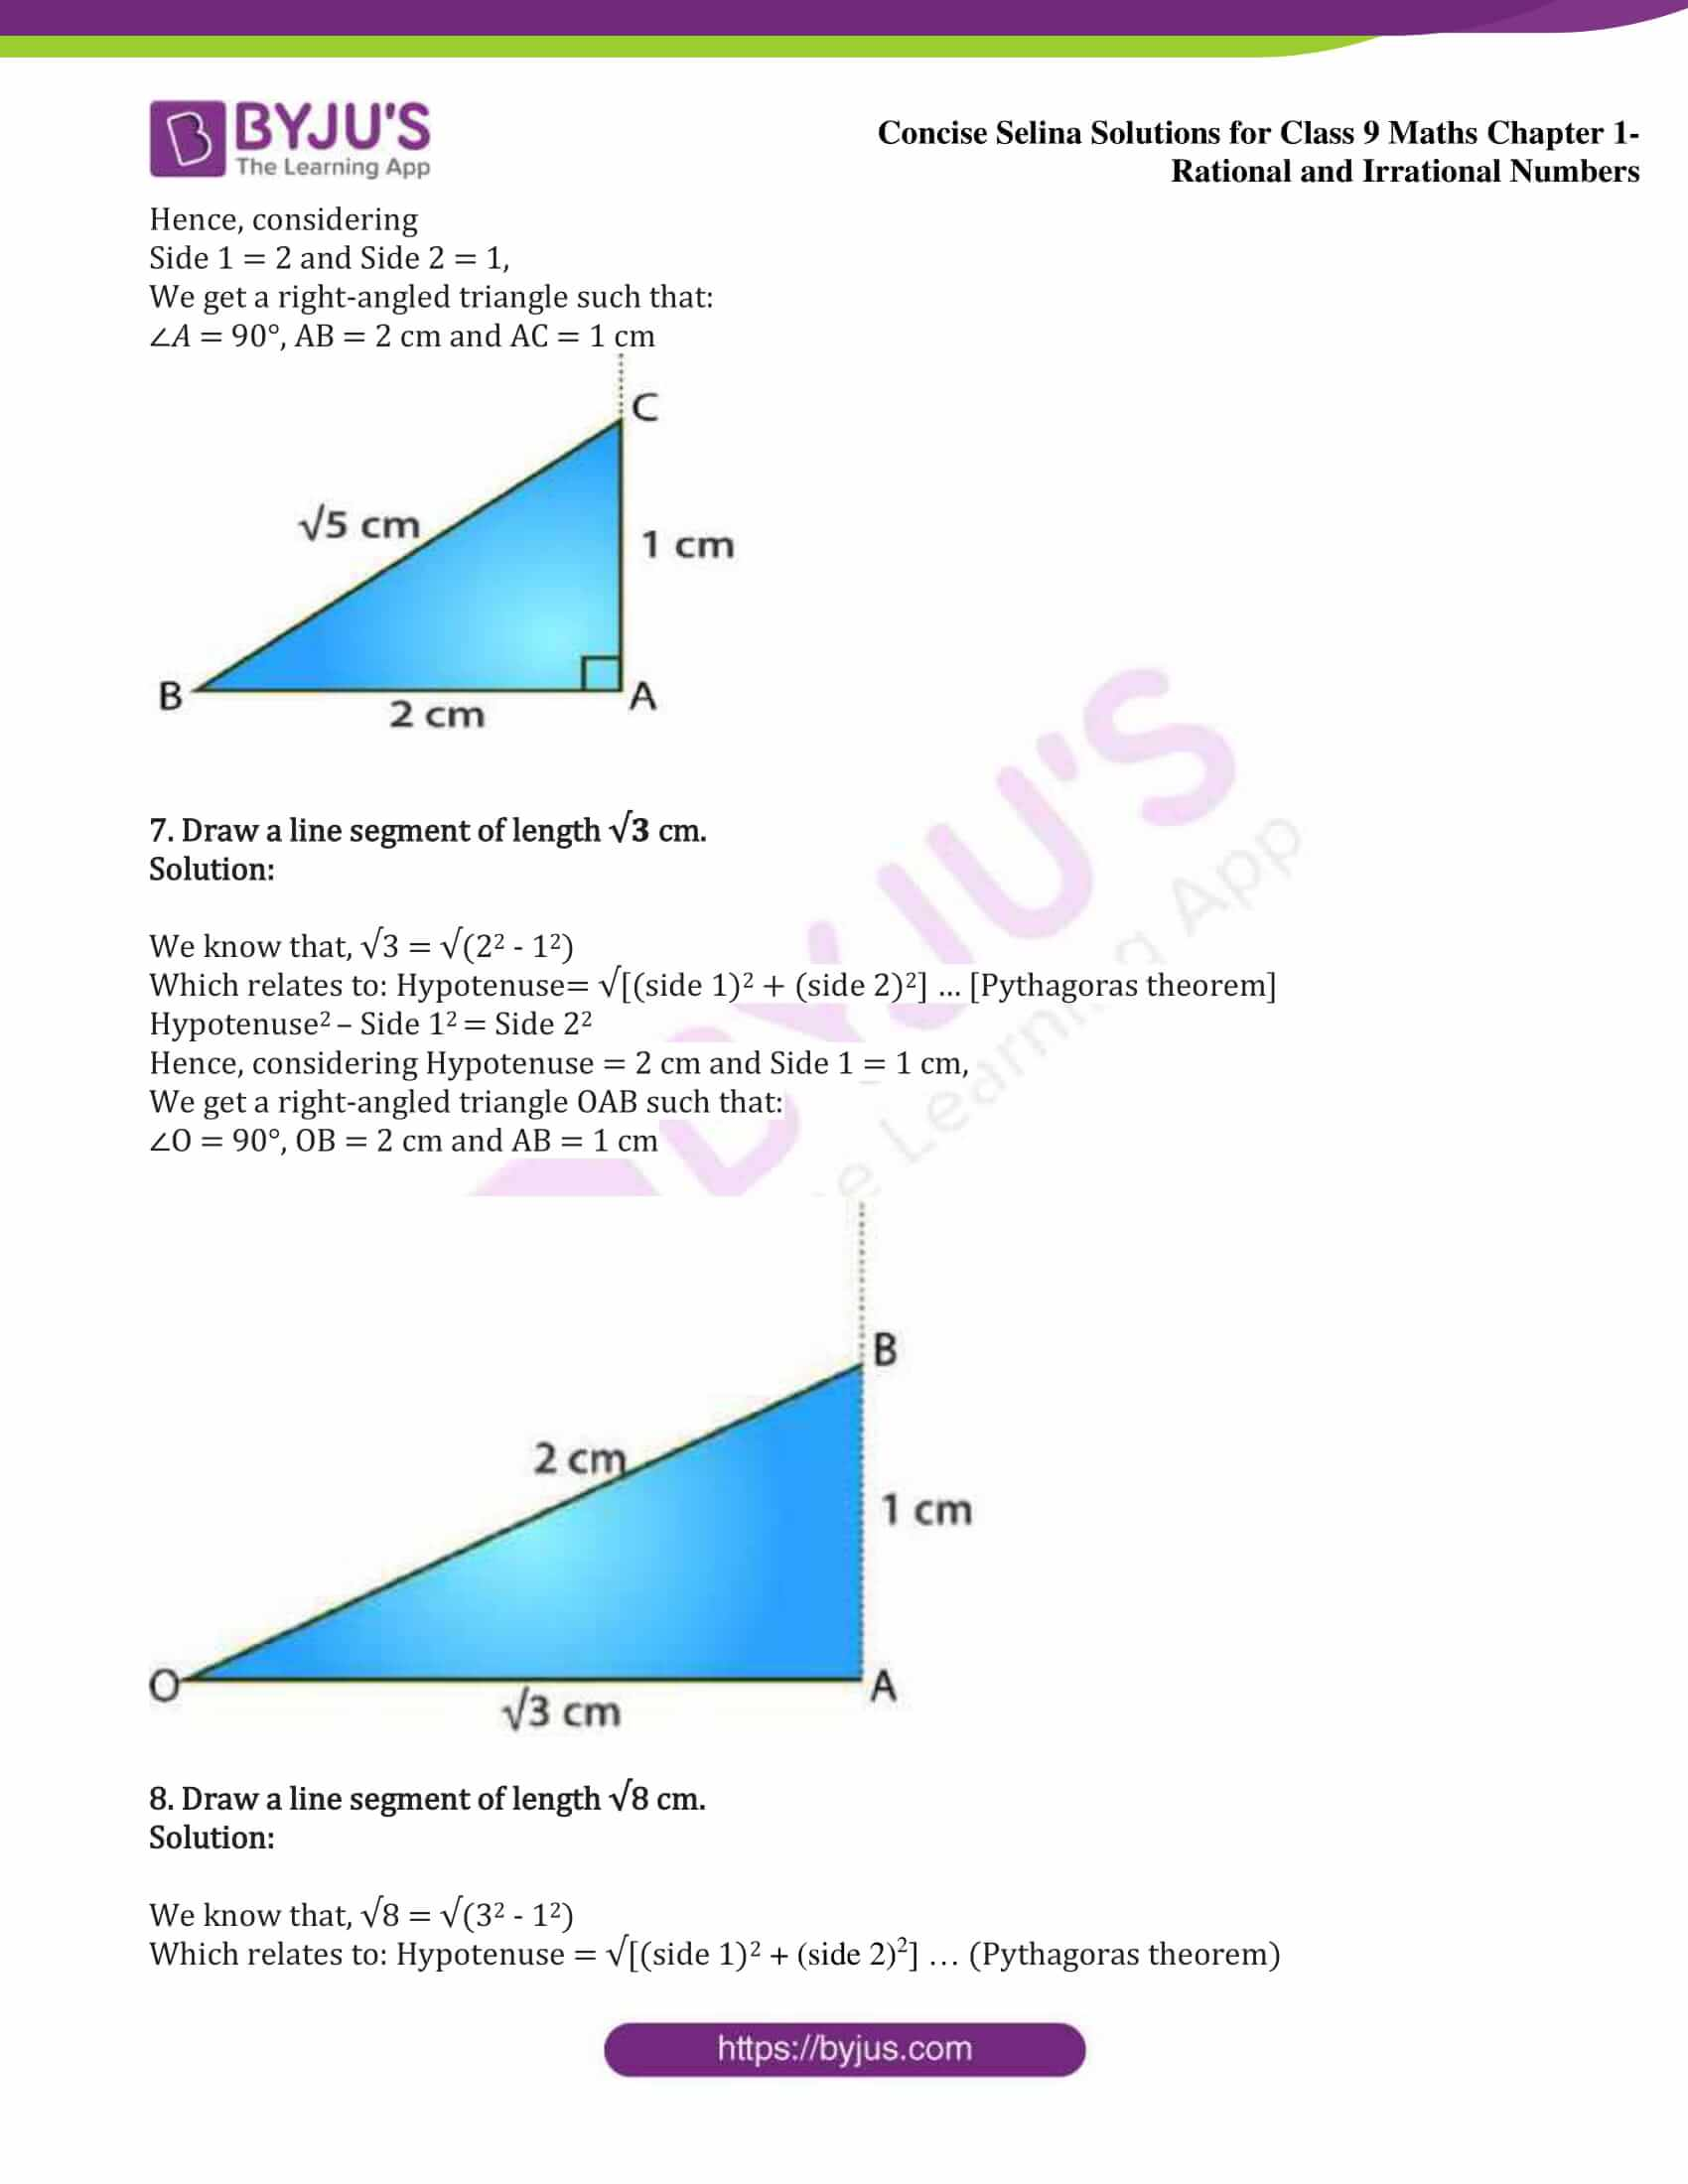 icse class 9 maths may13 selina solutions chapter 1 rational and irrational numbers 37